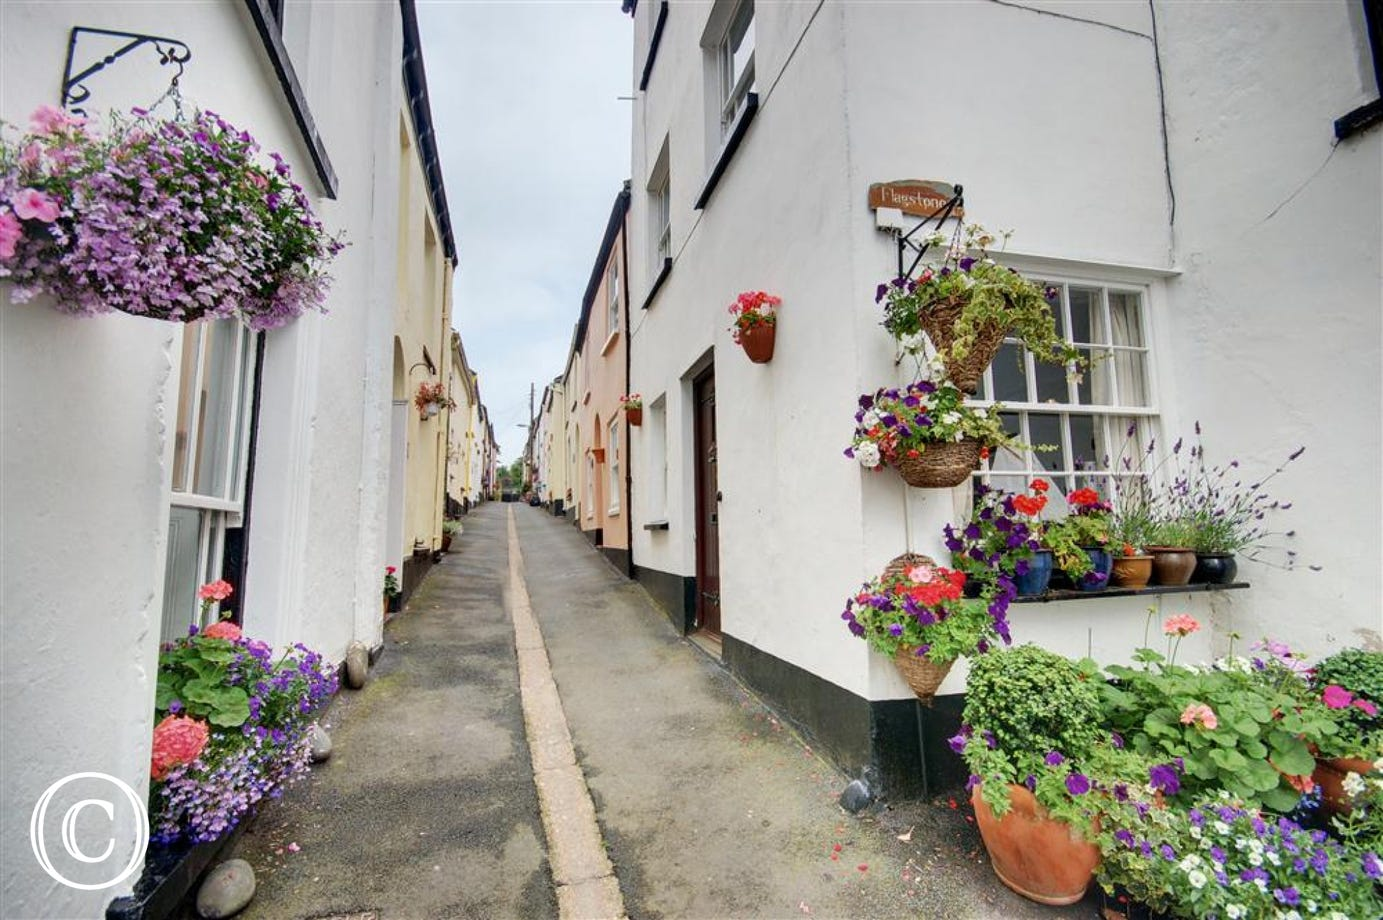 Surrounded by colour washed cottages and with no vehicular access, this part of the village has great charm and character